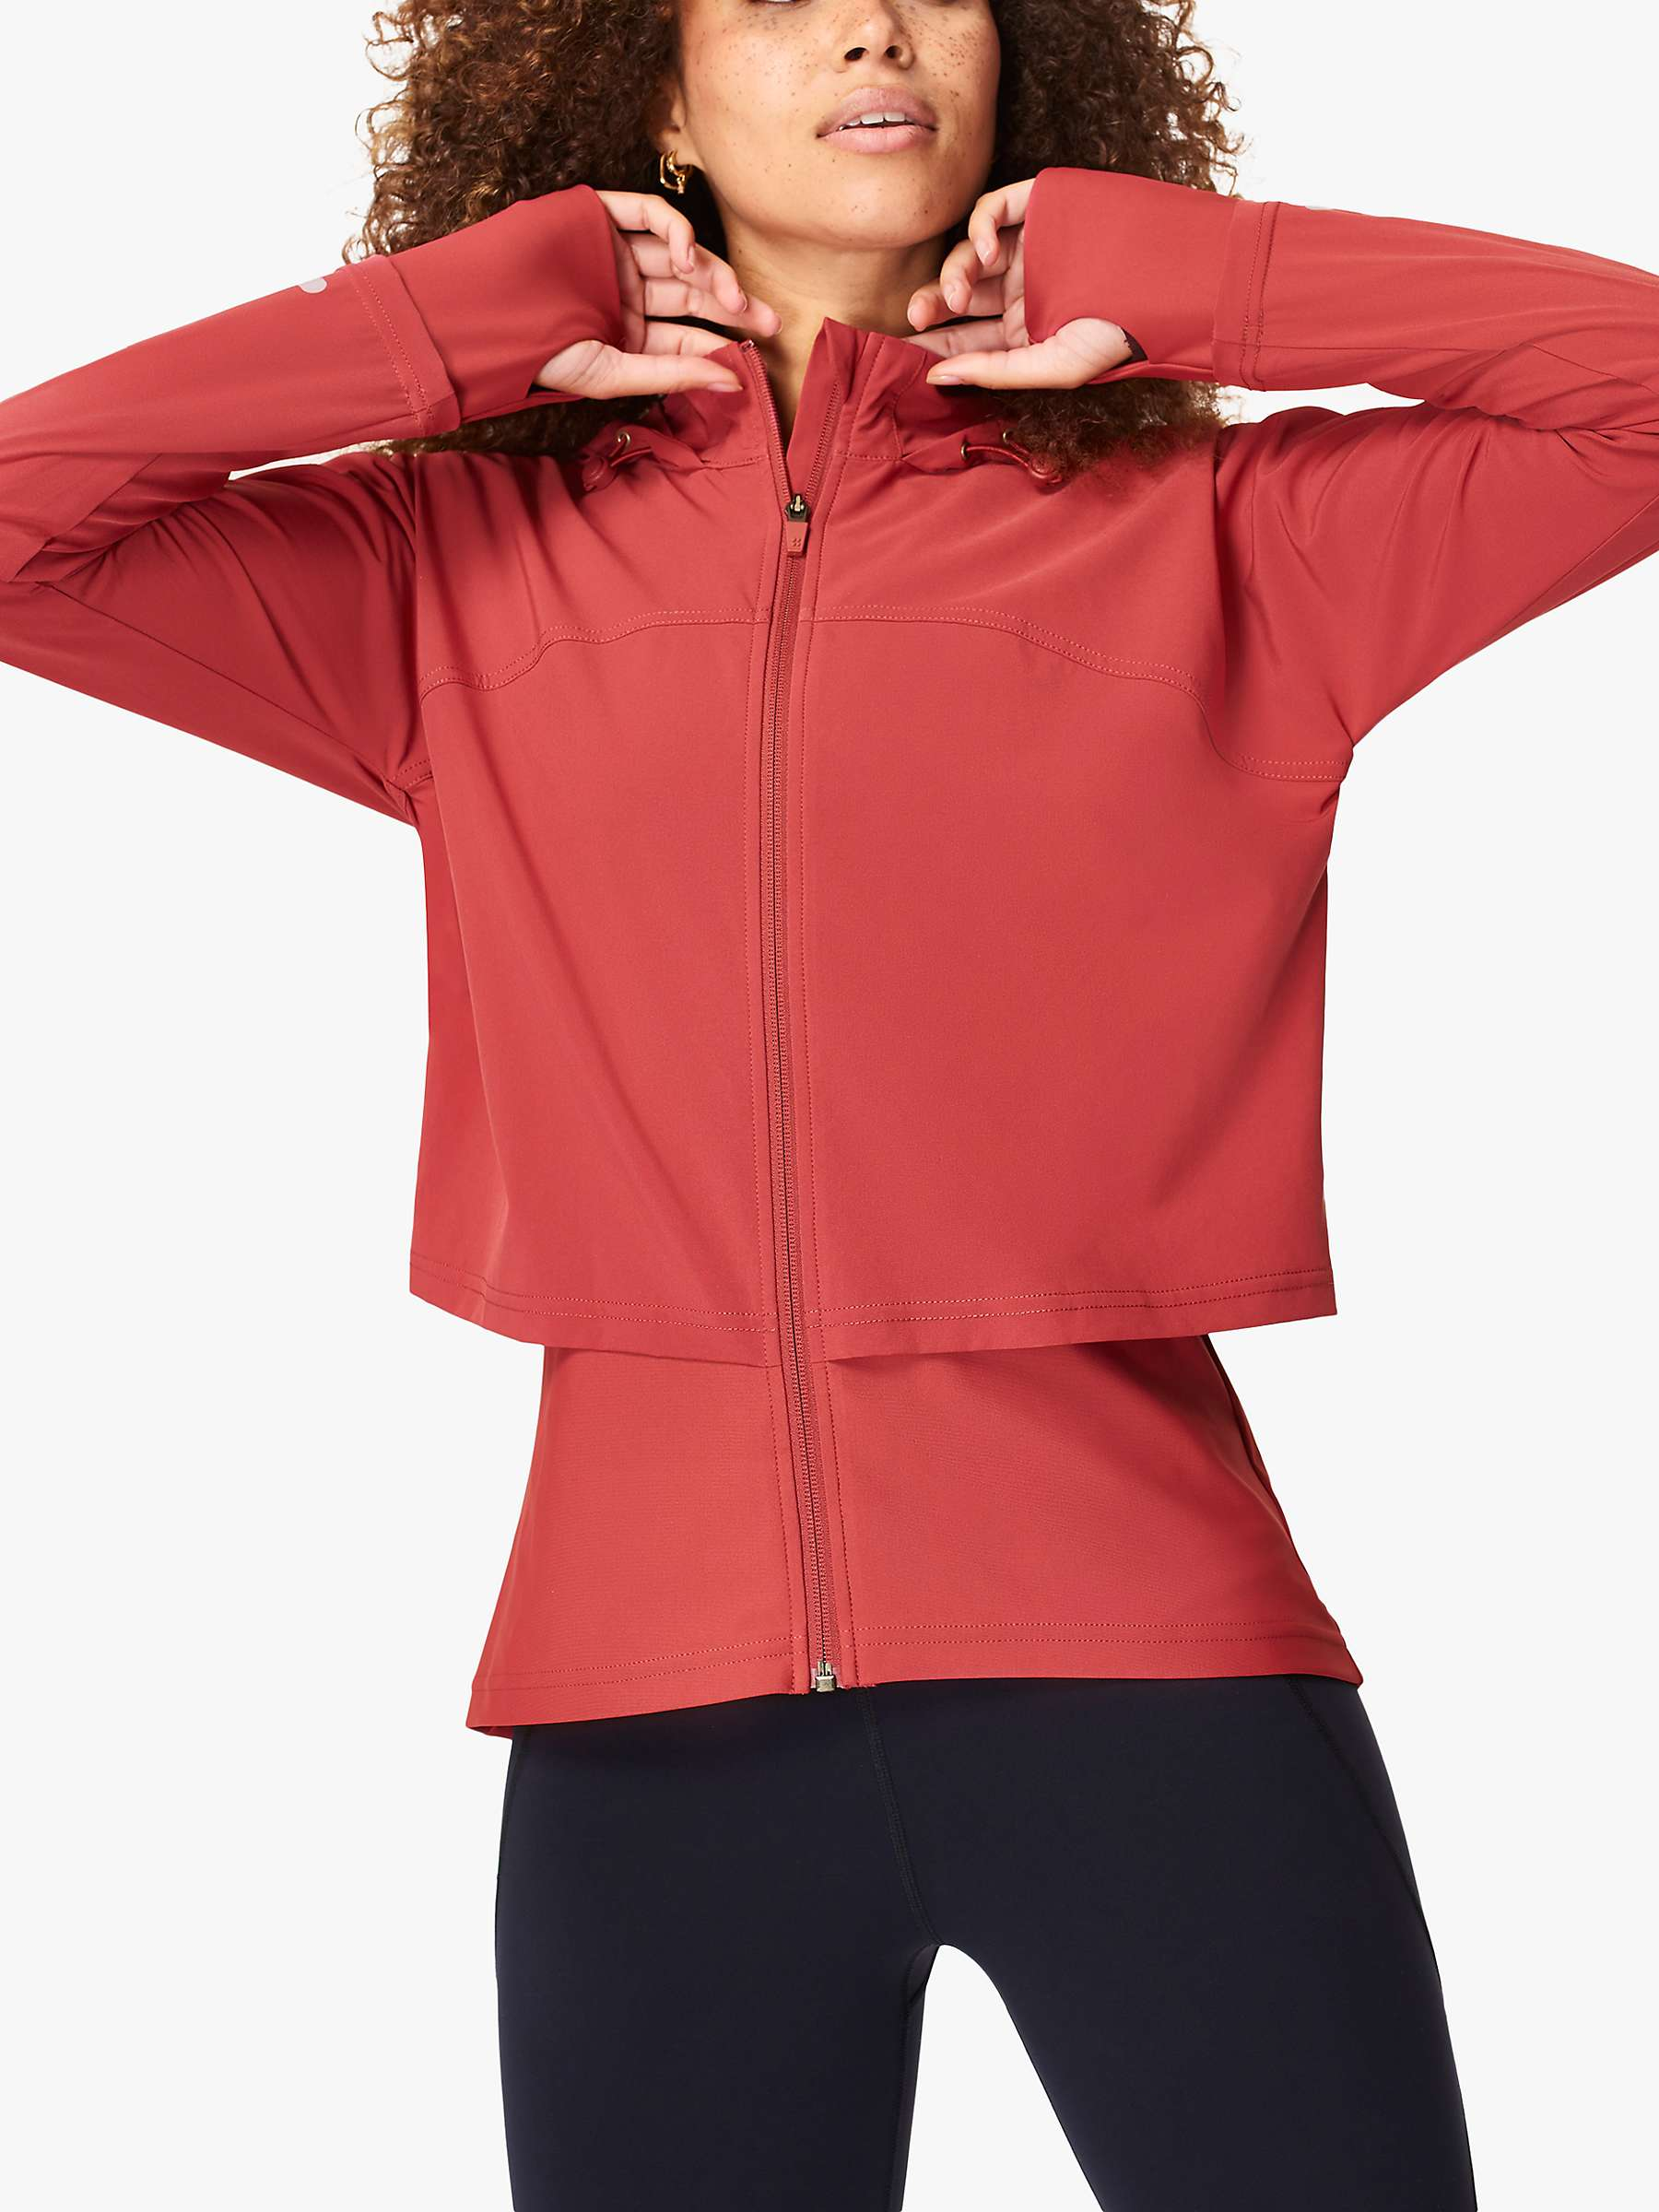 Sweaty Betty Fast Track Running Jacket, Renaissance Red